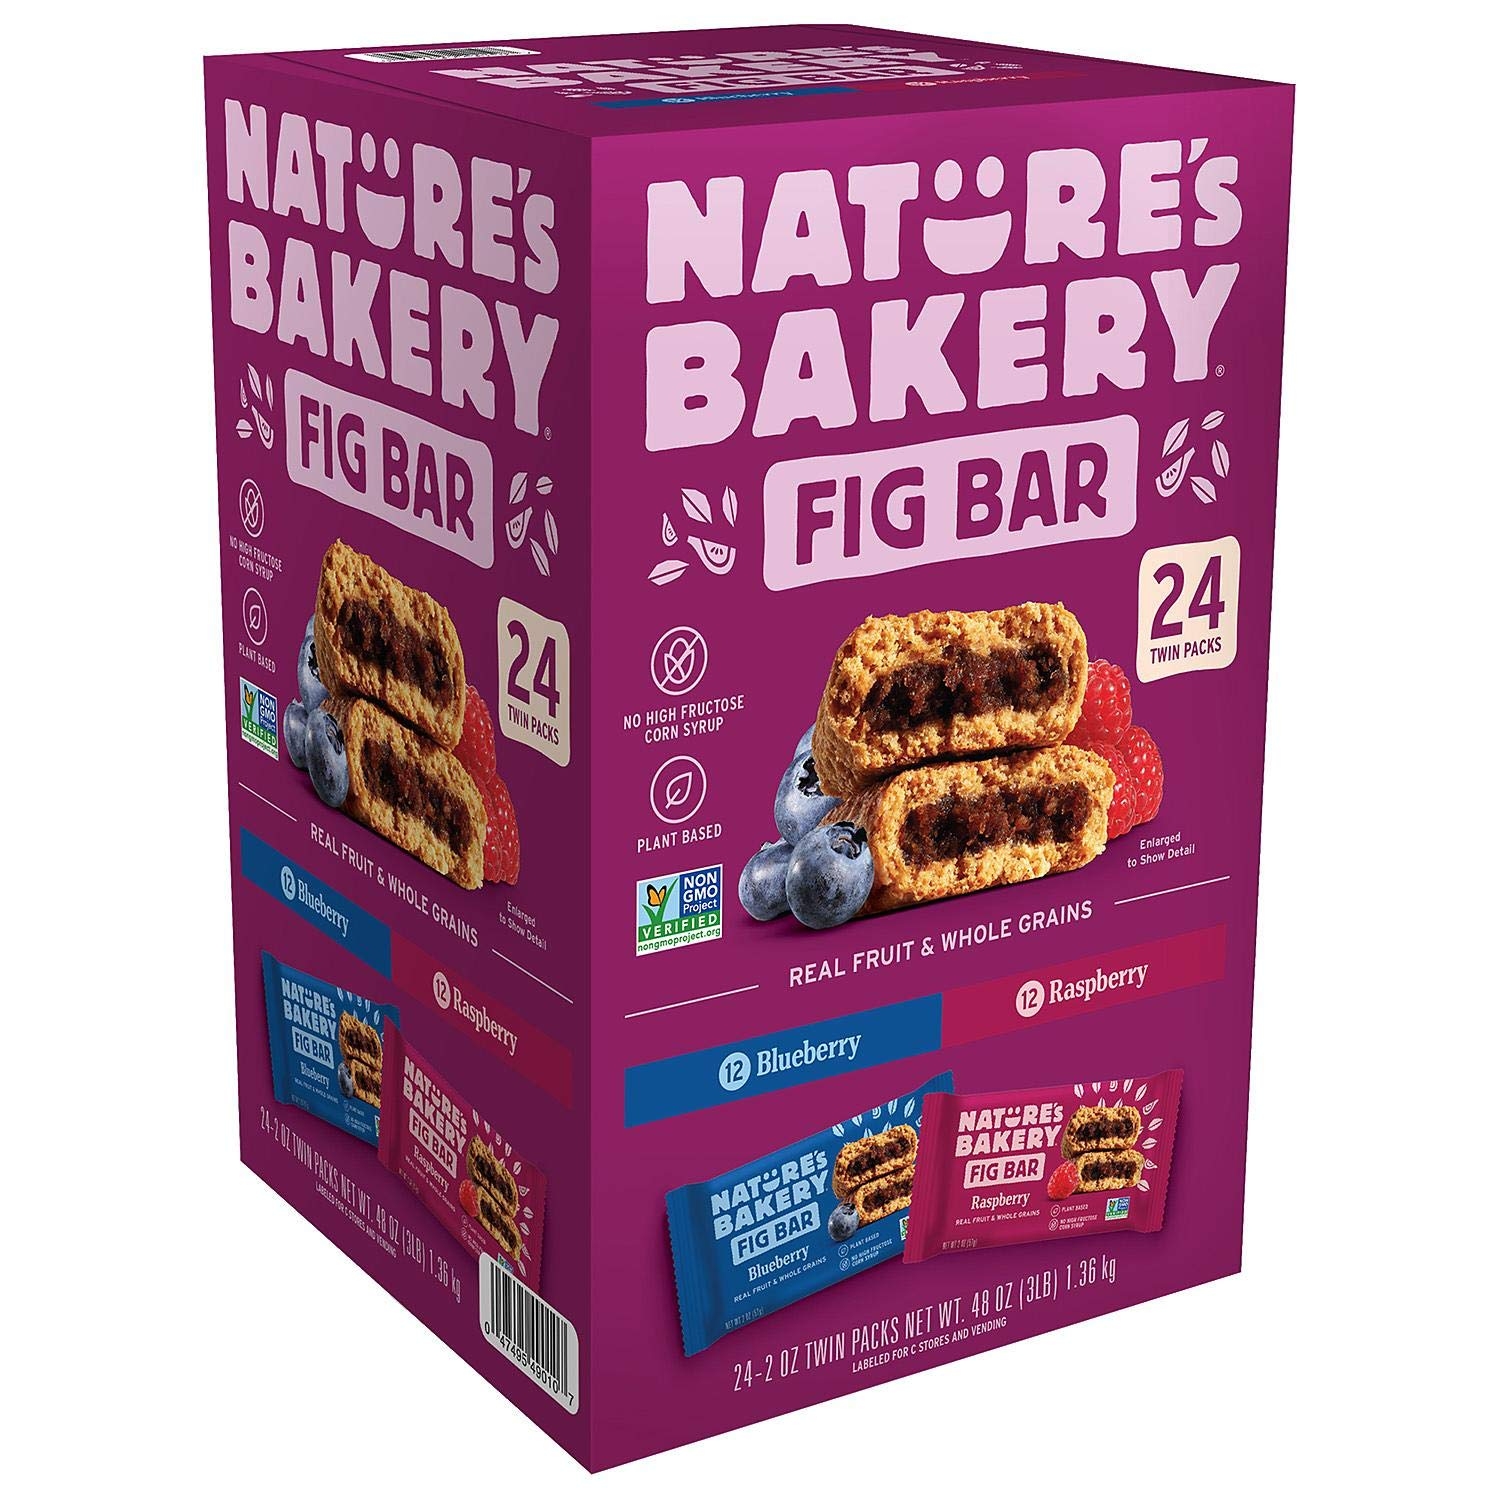 Nature's Bakery Fig Bar Variety Twin Pack (2 oz. - 24 pk.) by Nature's Bakery FB